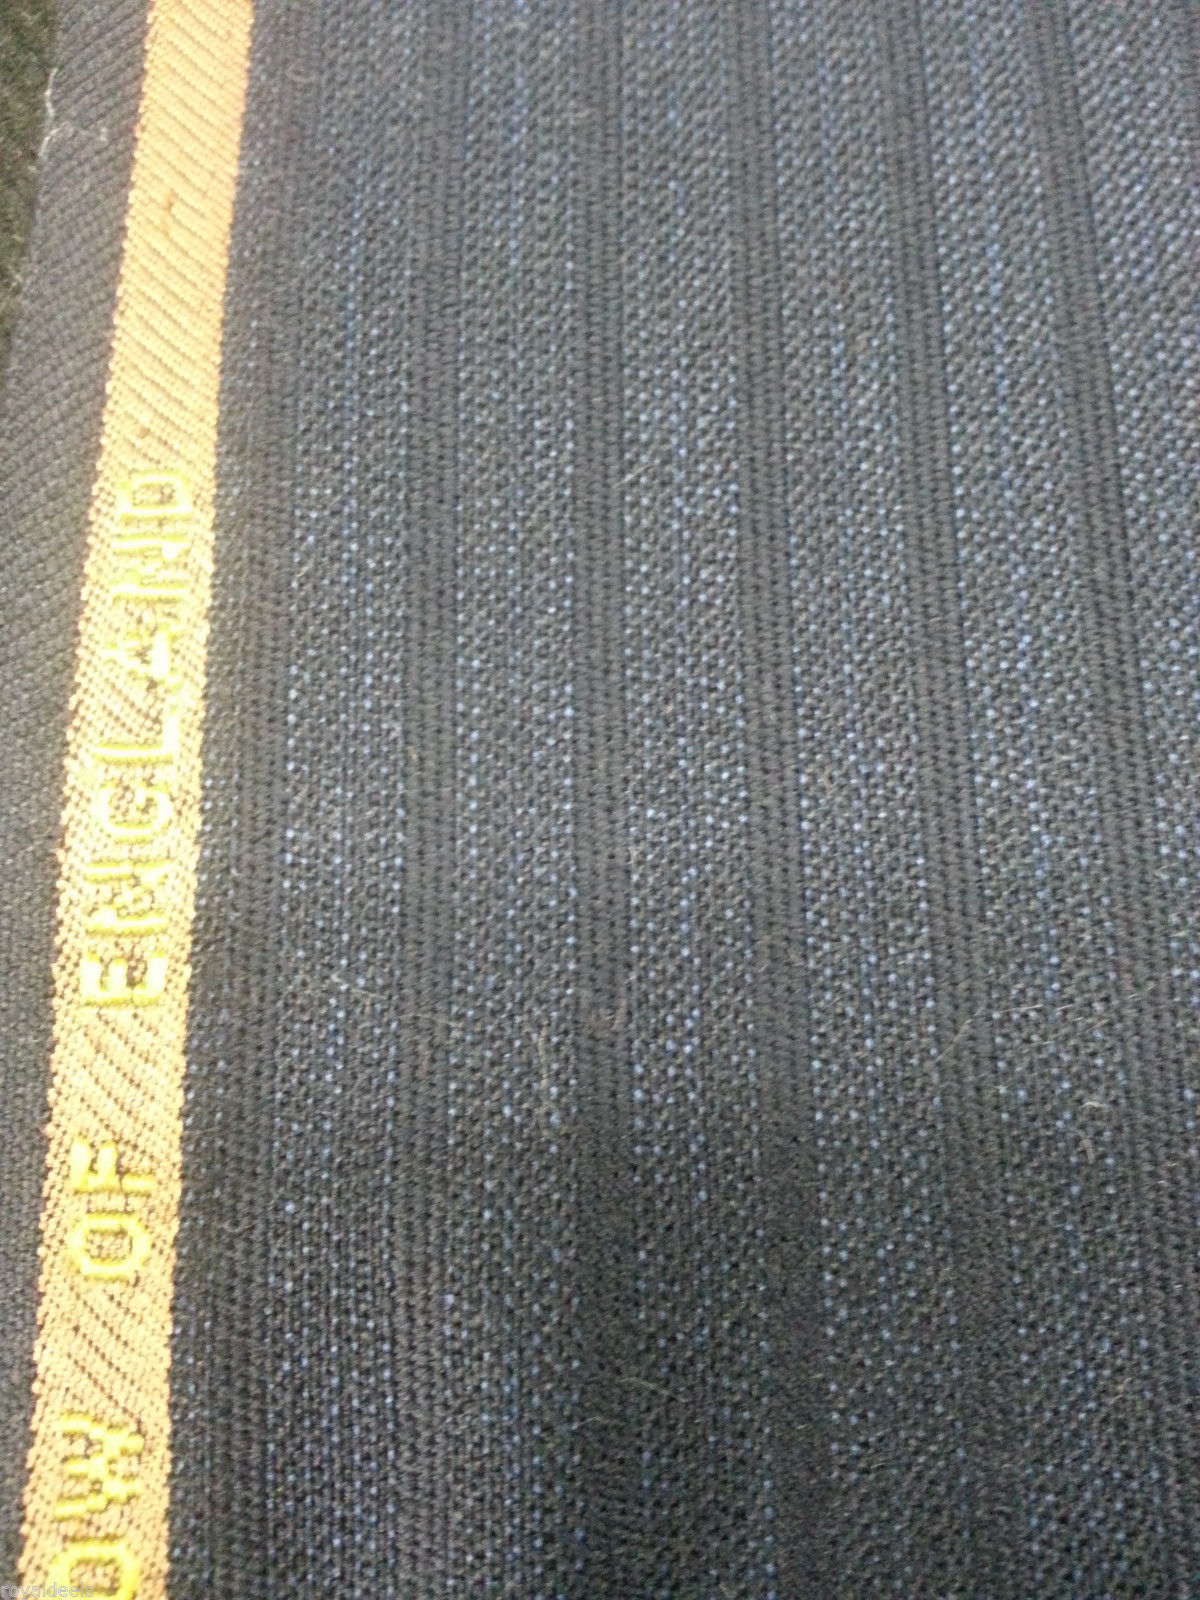 120'S ENGLISH FINE WOOL Wool Suit /Skirt  Fabric Blue Striped -6 Yard MSRP $750